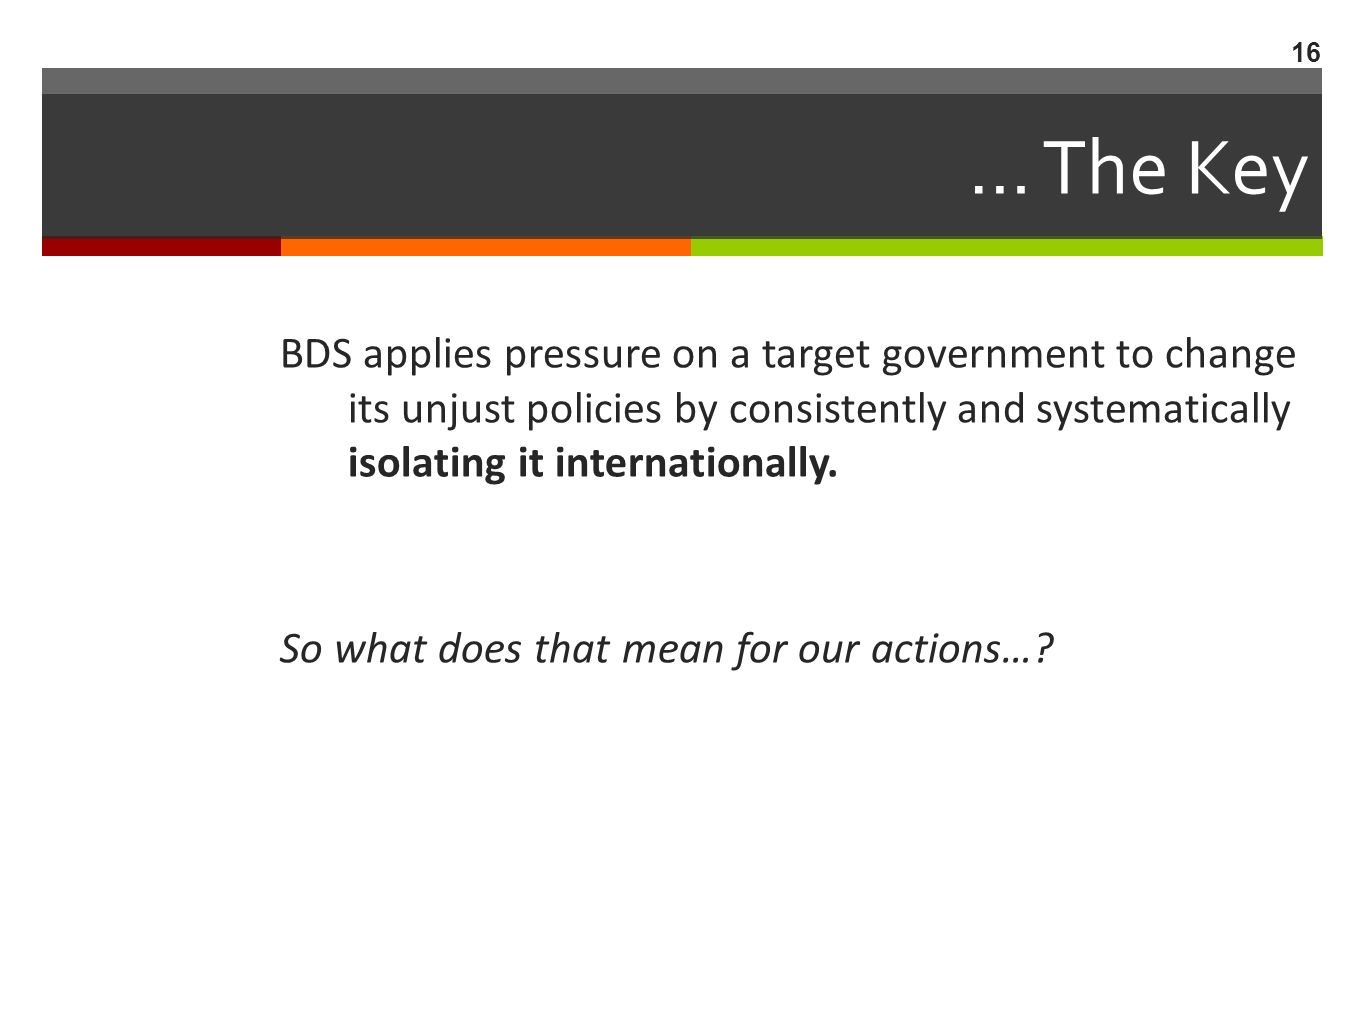 … The Key BDS applies pressure on a target government to change its unjust policies by consistently and systematically isolating it internationally.